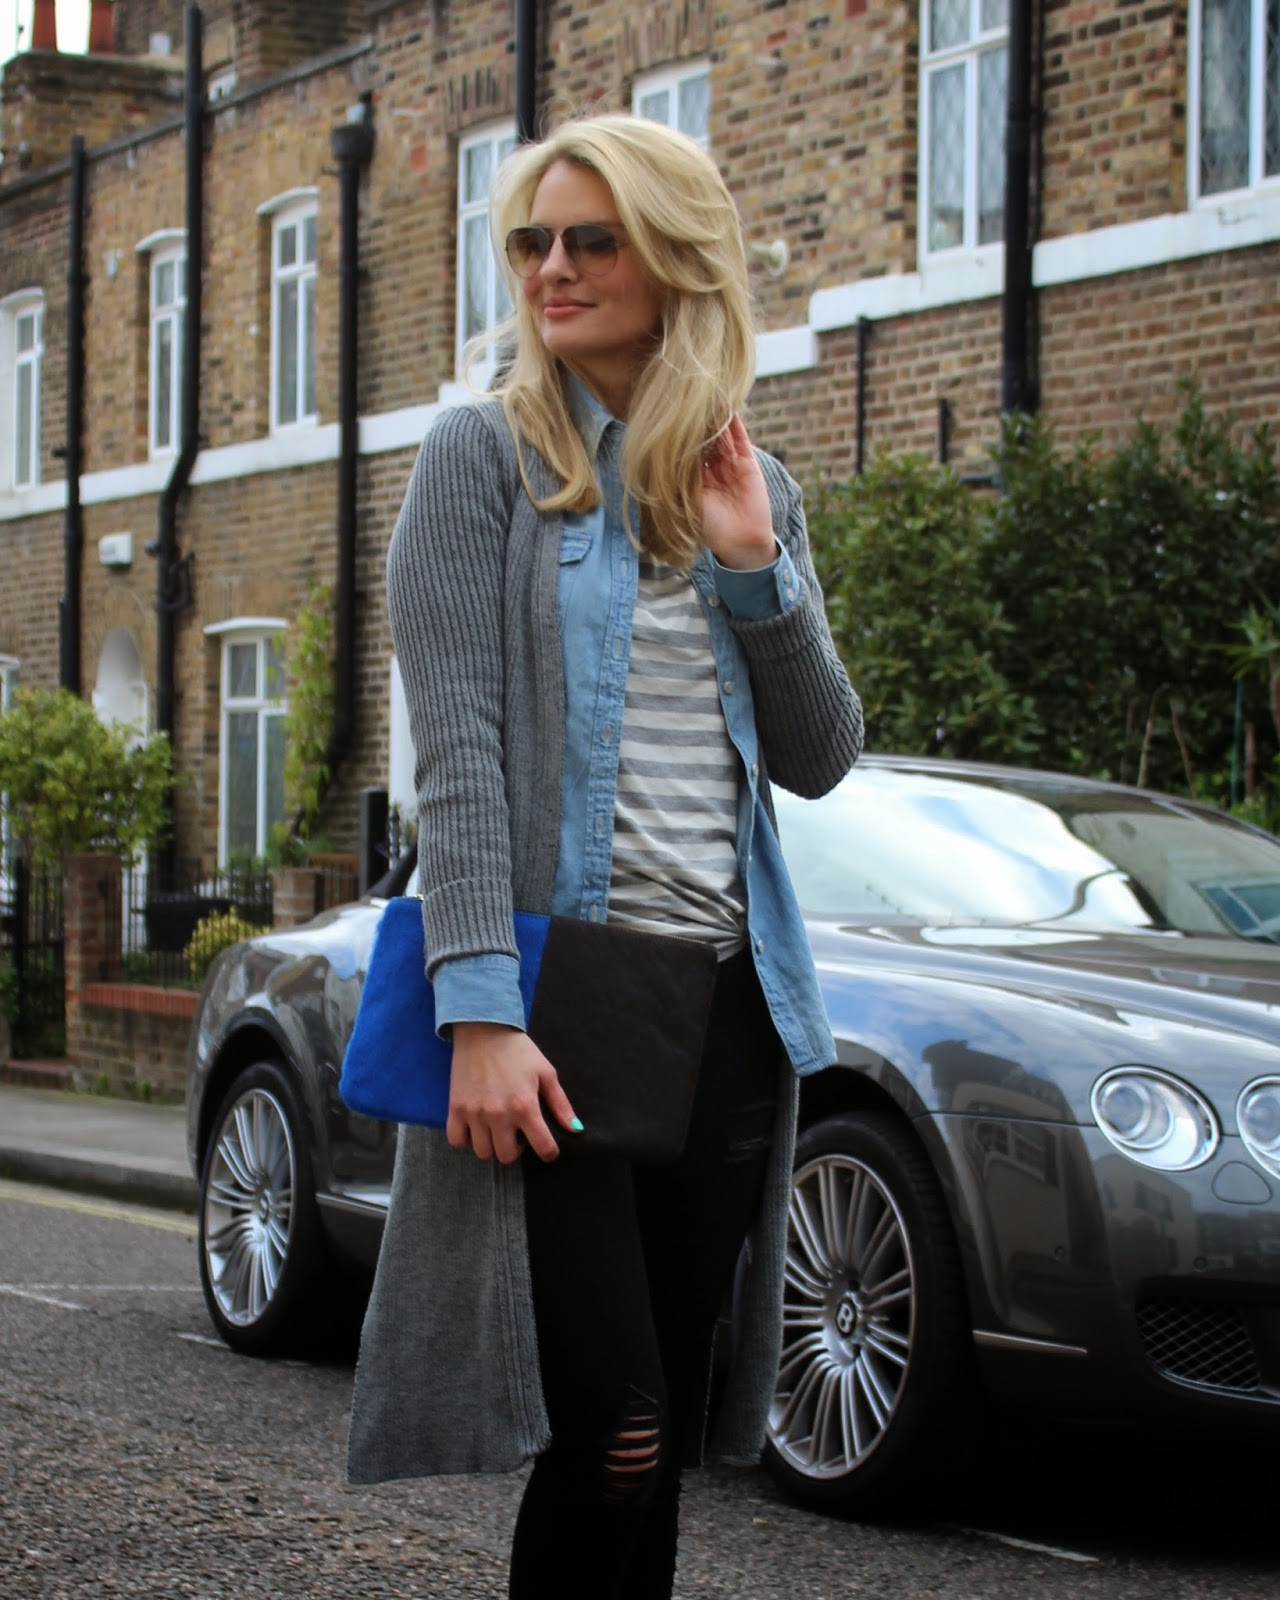 London street style, layered up look, long grey cardigan, lipsy cardigan, striped top. grey striped top, spring look, fruehlingslook, jeans shirt, chambary shirt, ripped jeans, gap jeans, black ripped jeans, pony hair clutch, large clutch, london blogger